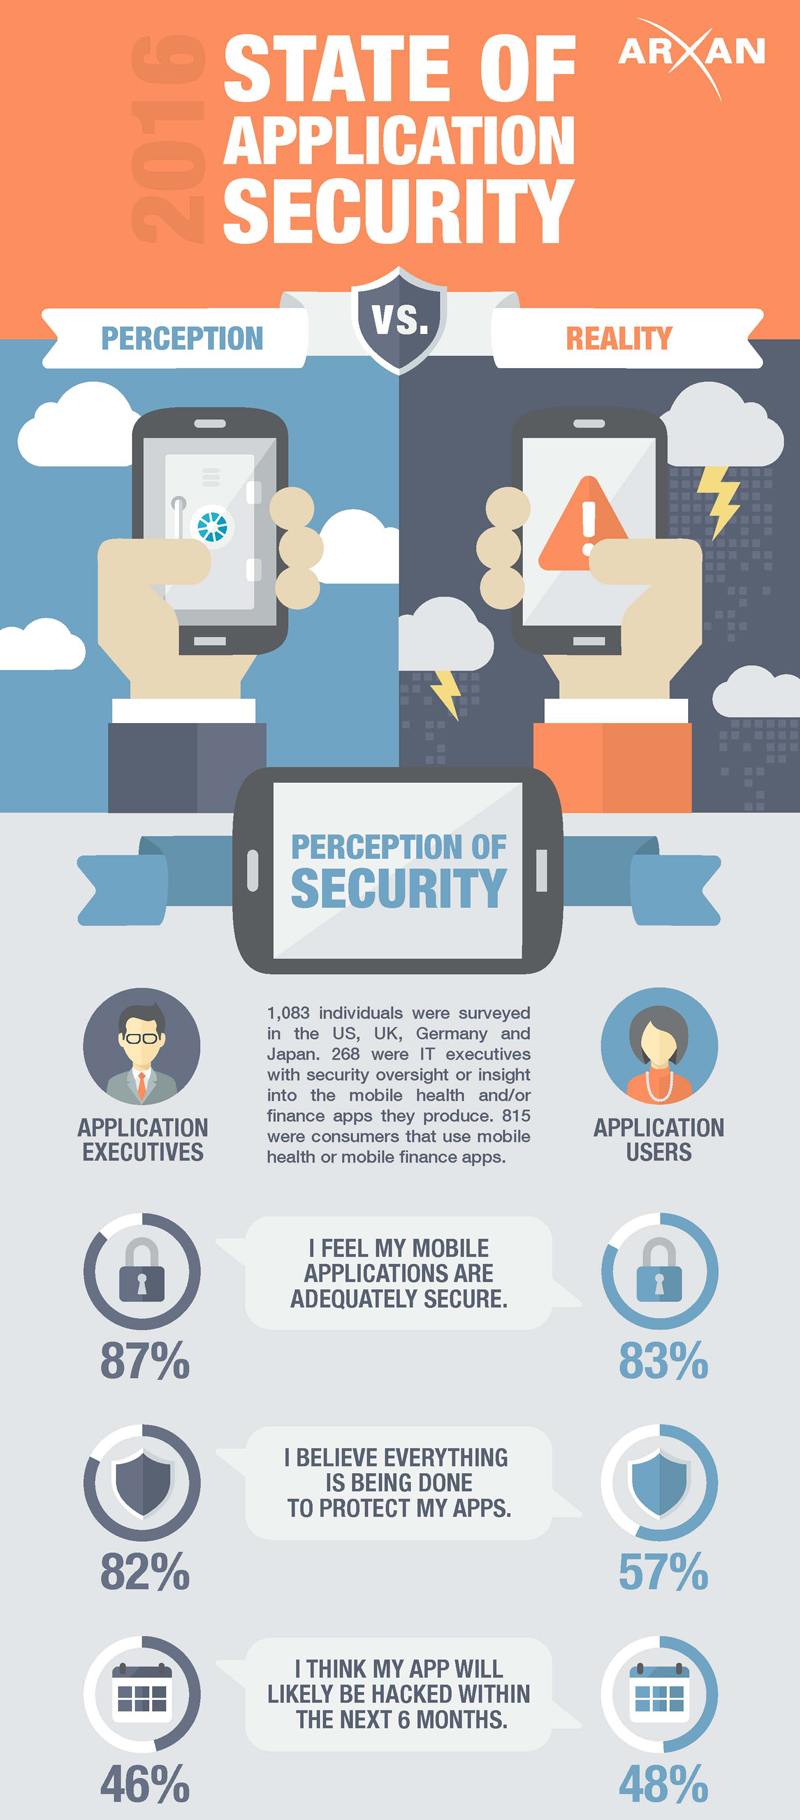 applicationsecurity1 - Mobile Application Security in 2018, 2019